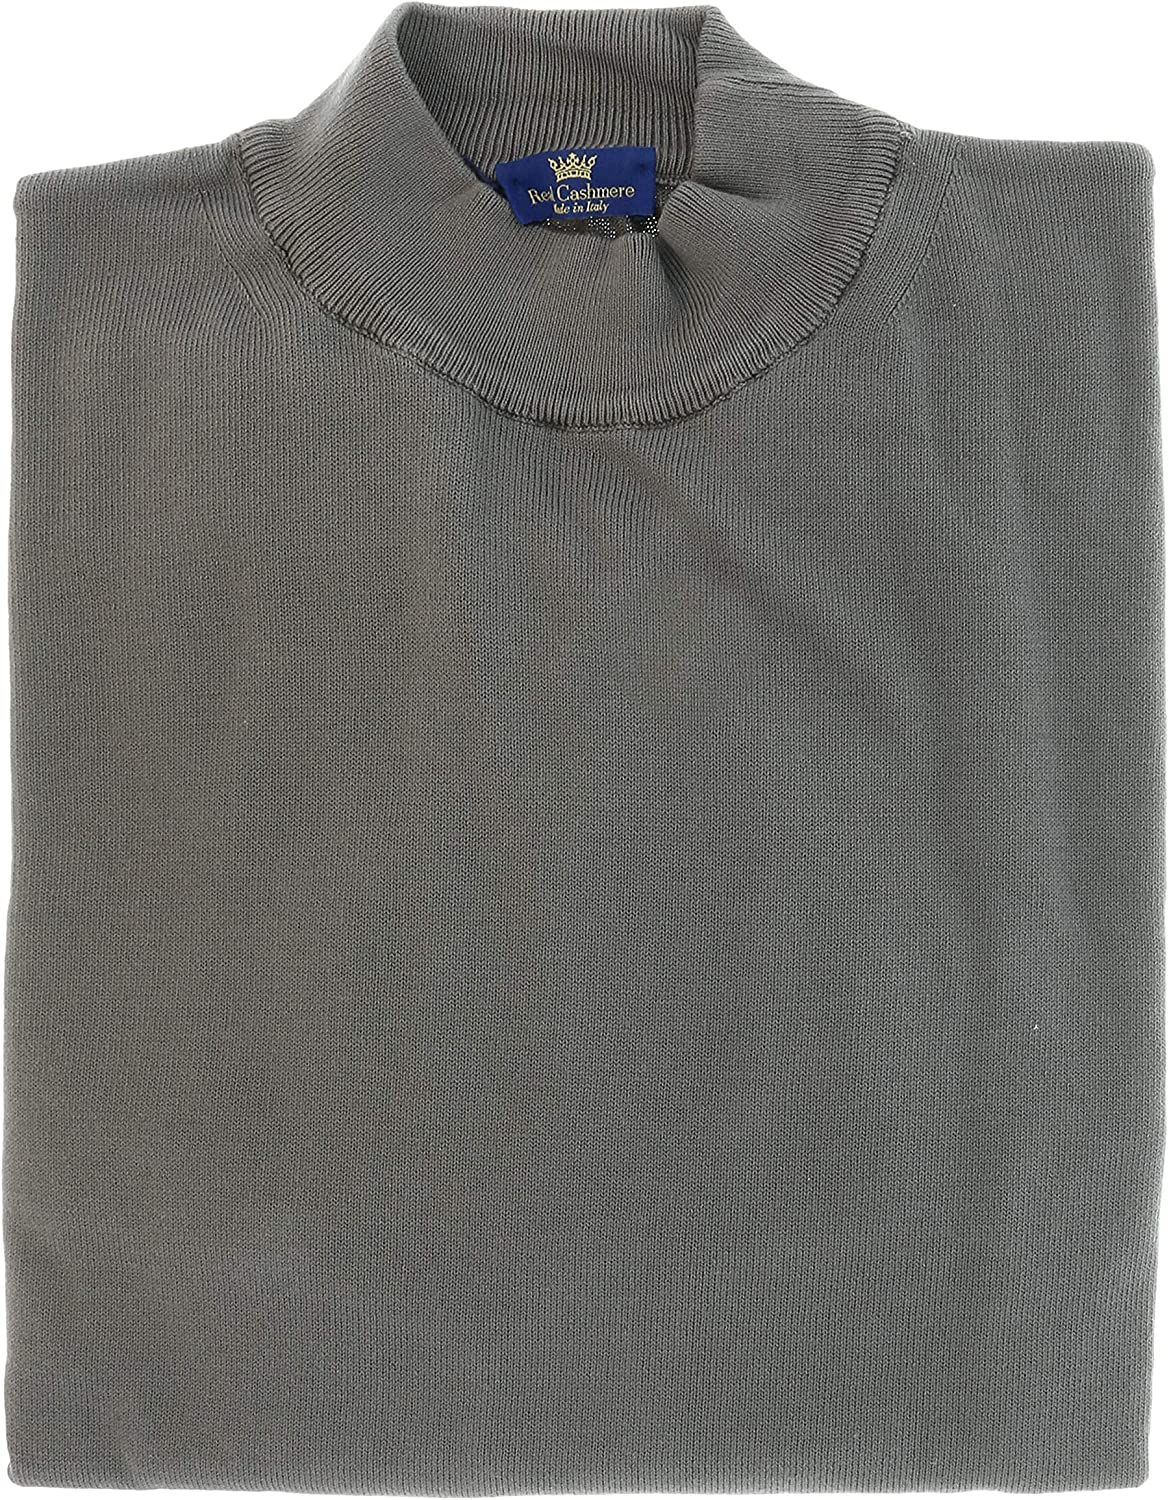 Real Cashmere Cotton-Modal Blend Mock Neck Big Mens Taupe Sweater for Mens